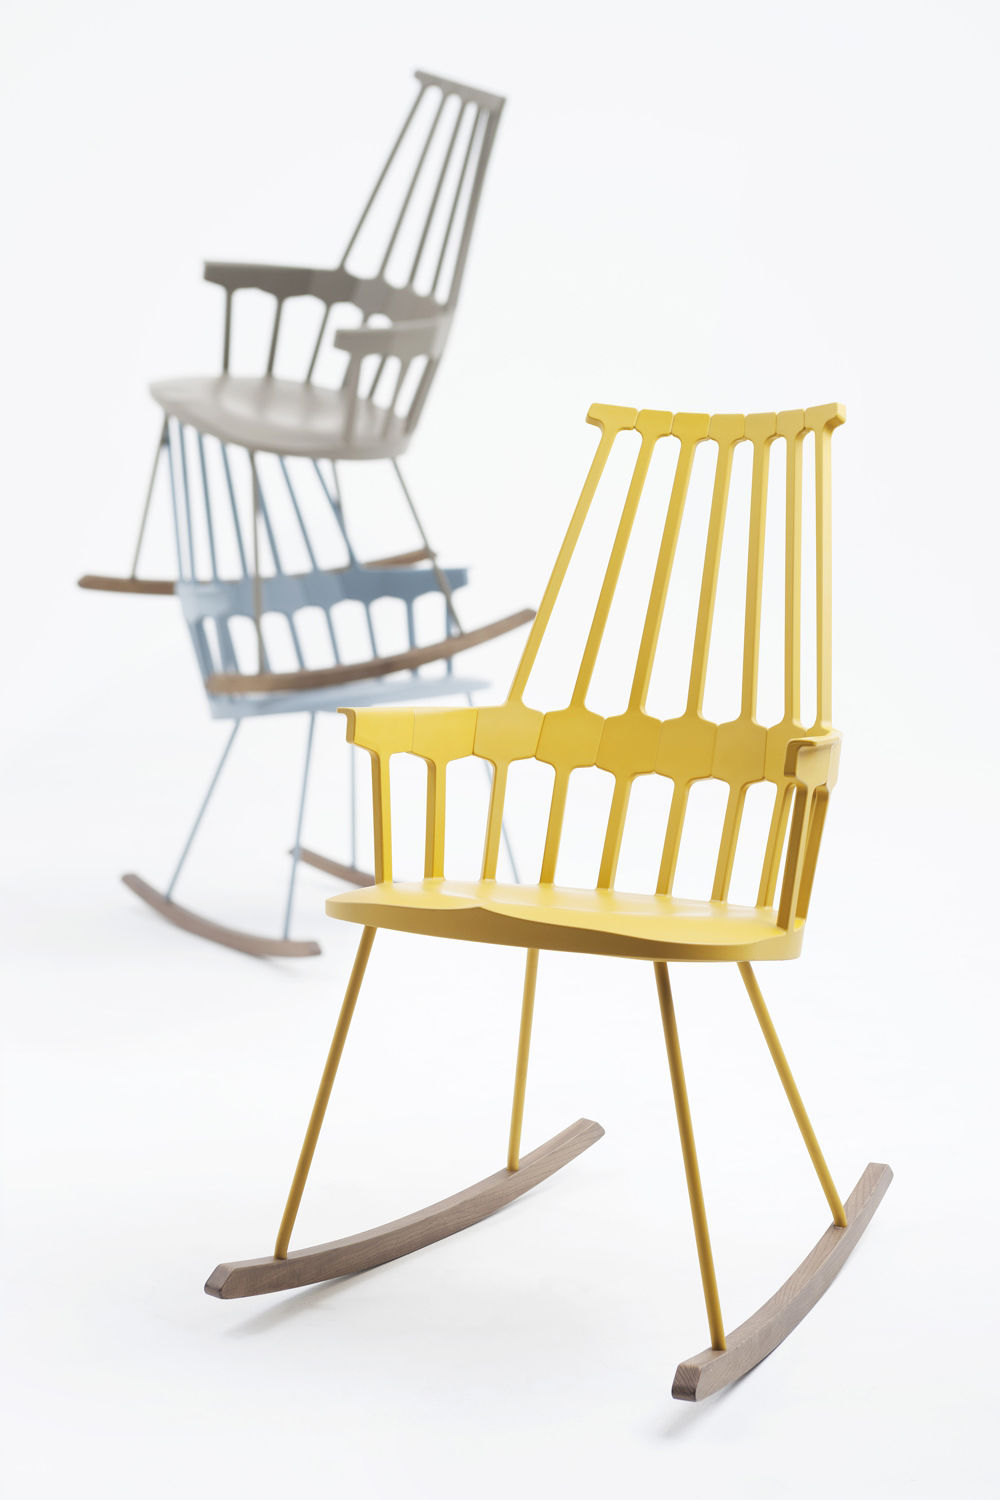 Furniture Armchairs Comback Rocking Chair By Kartell Yellow Wood Thermoplastic Technopolymer